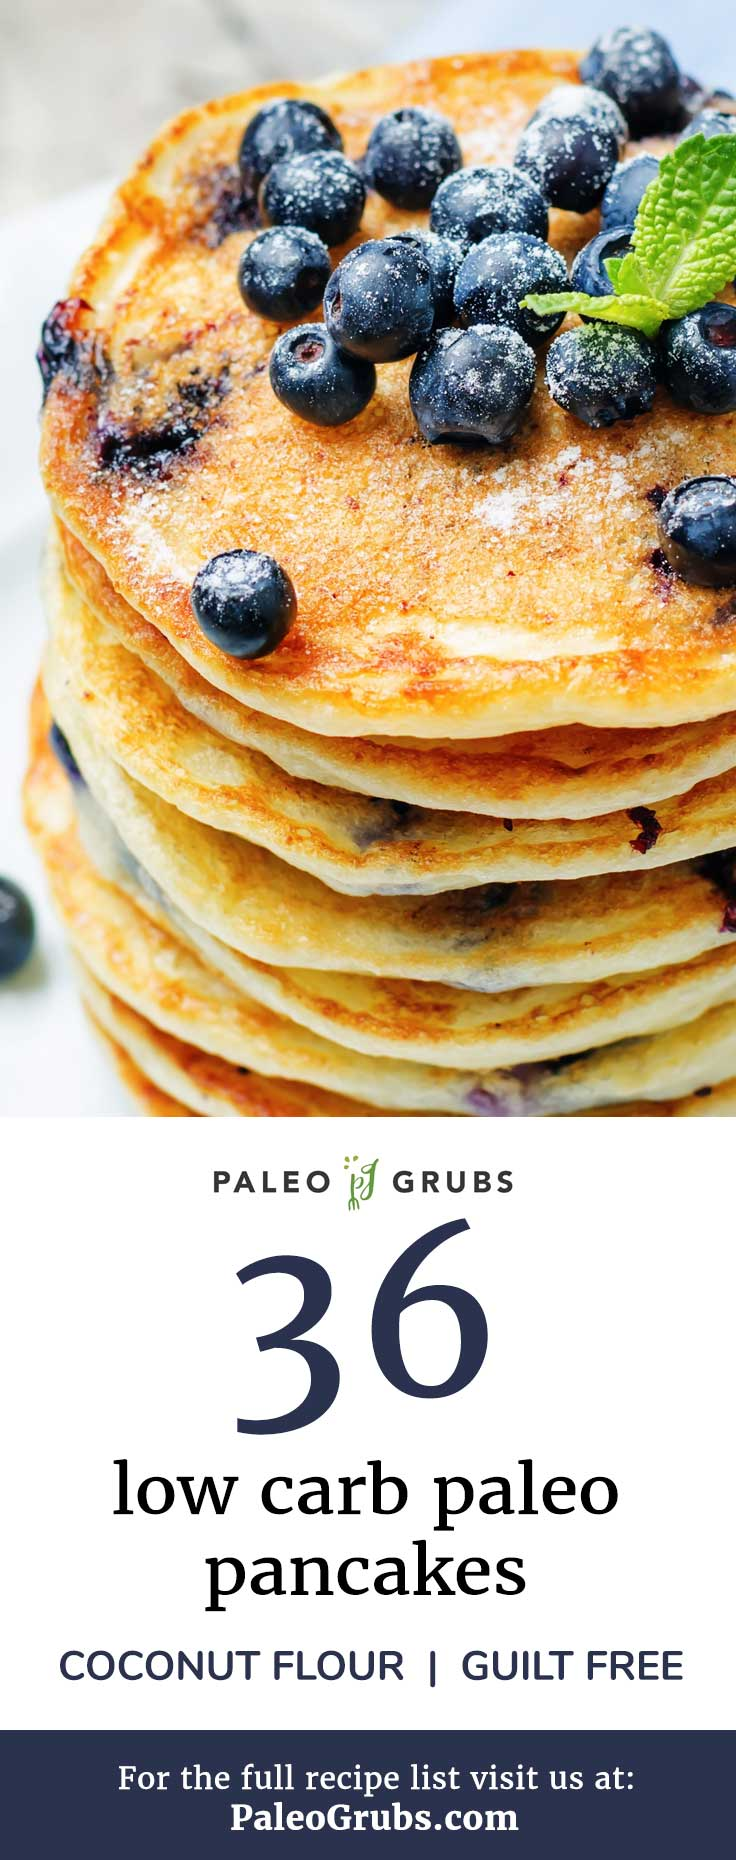 I love these guilt-free coconut flour paleo pancake recipes! They make the best low carb meal, and actually reheat really well for a quick snack.